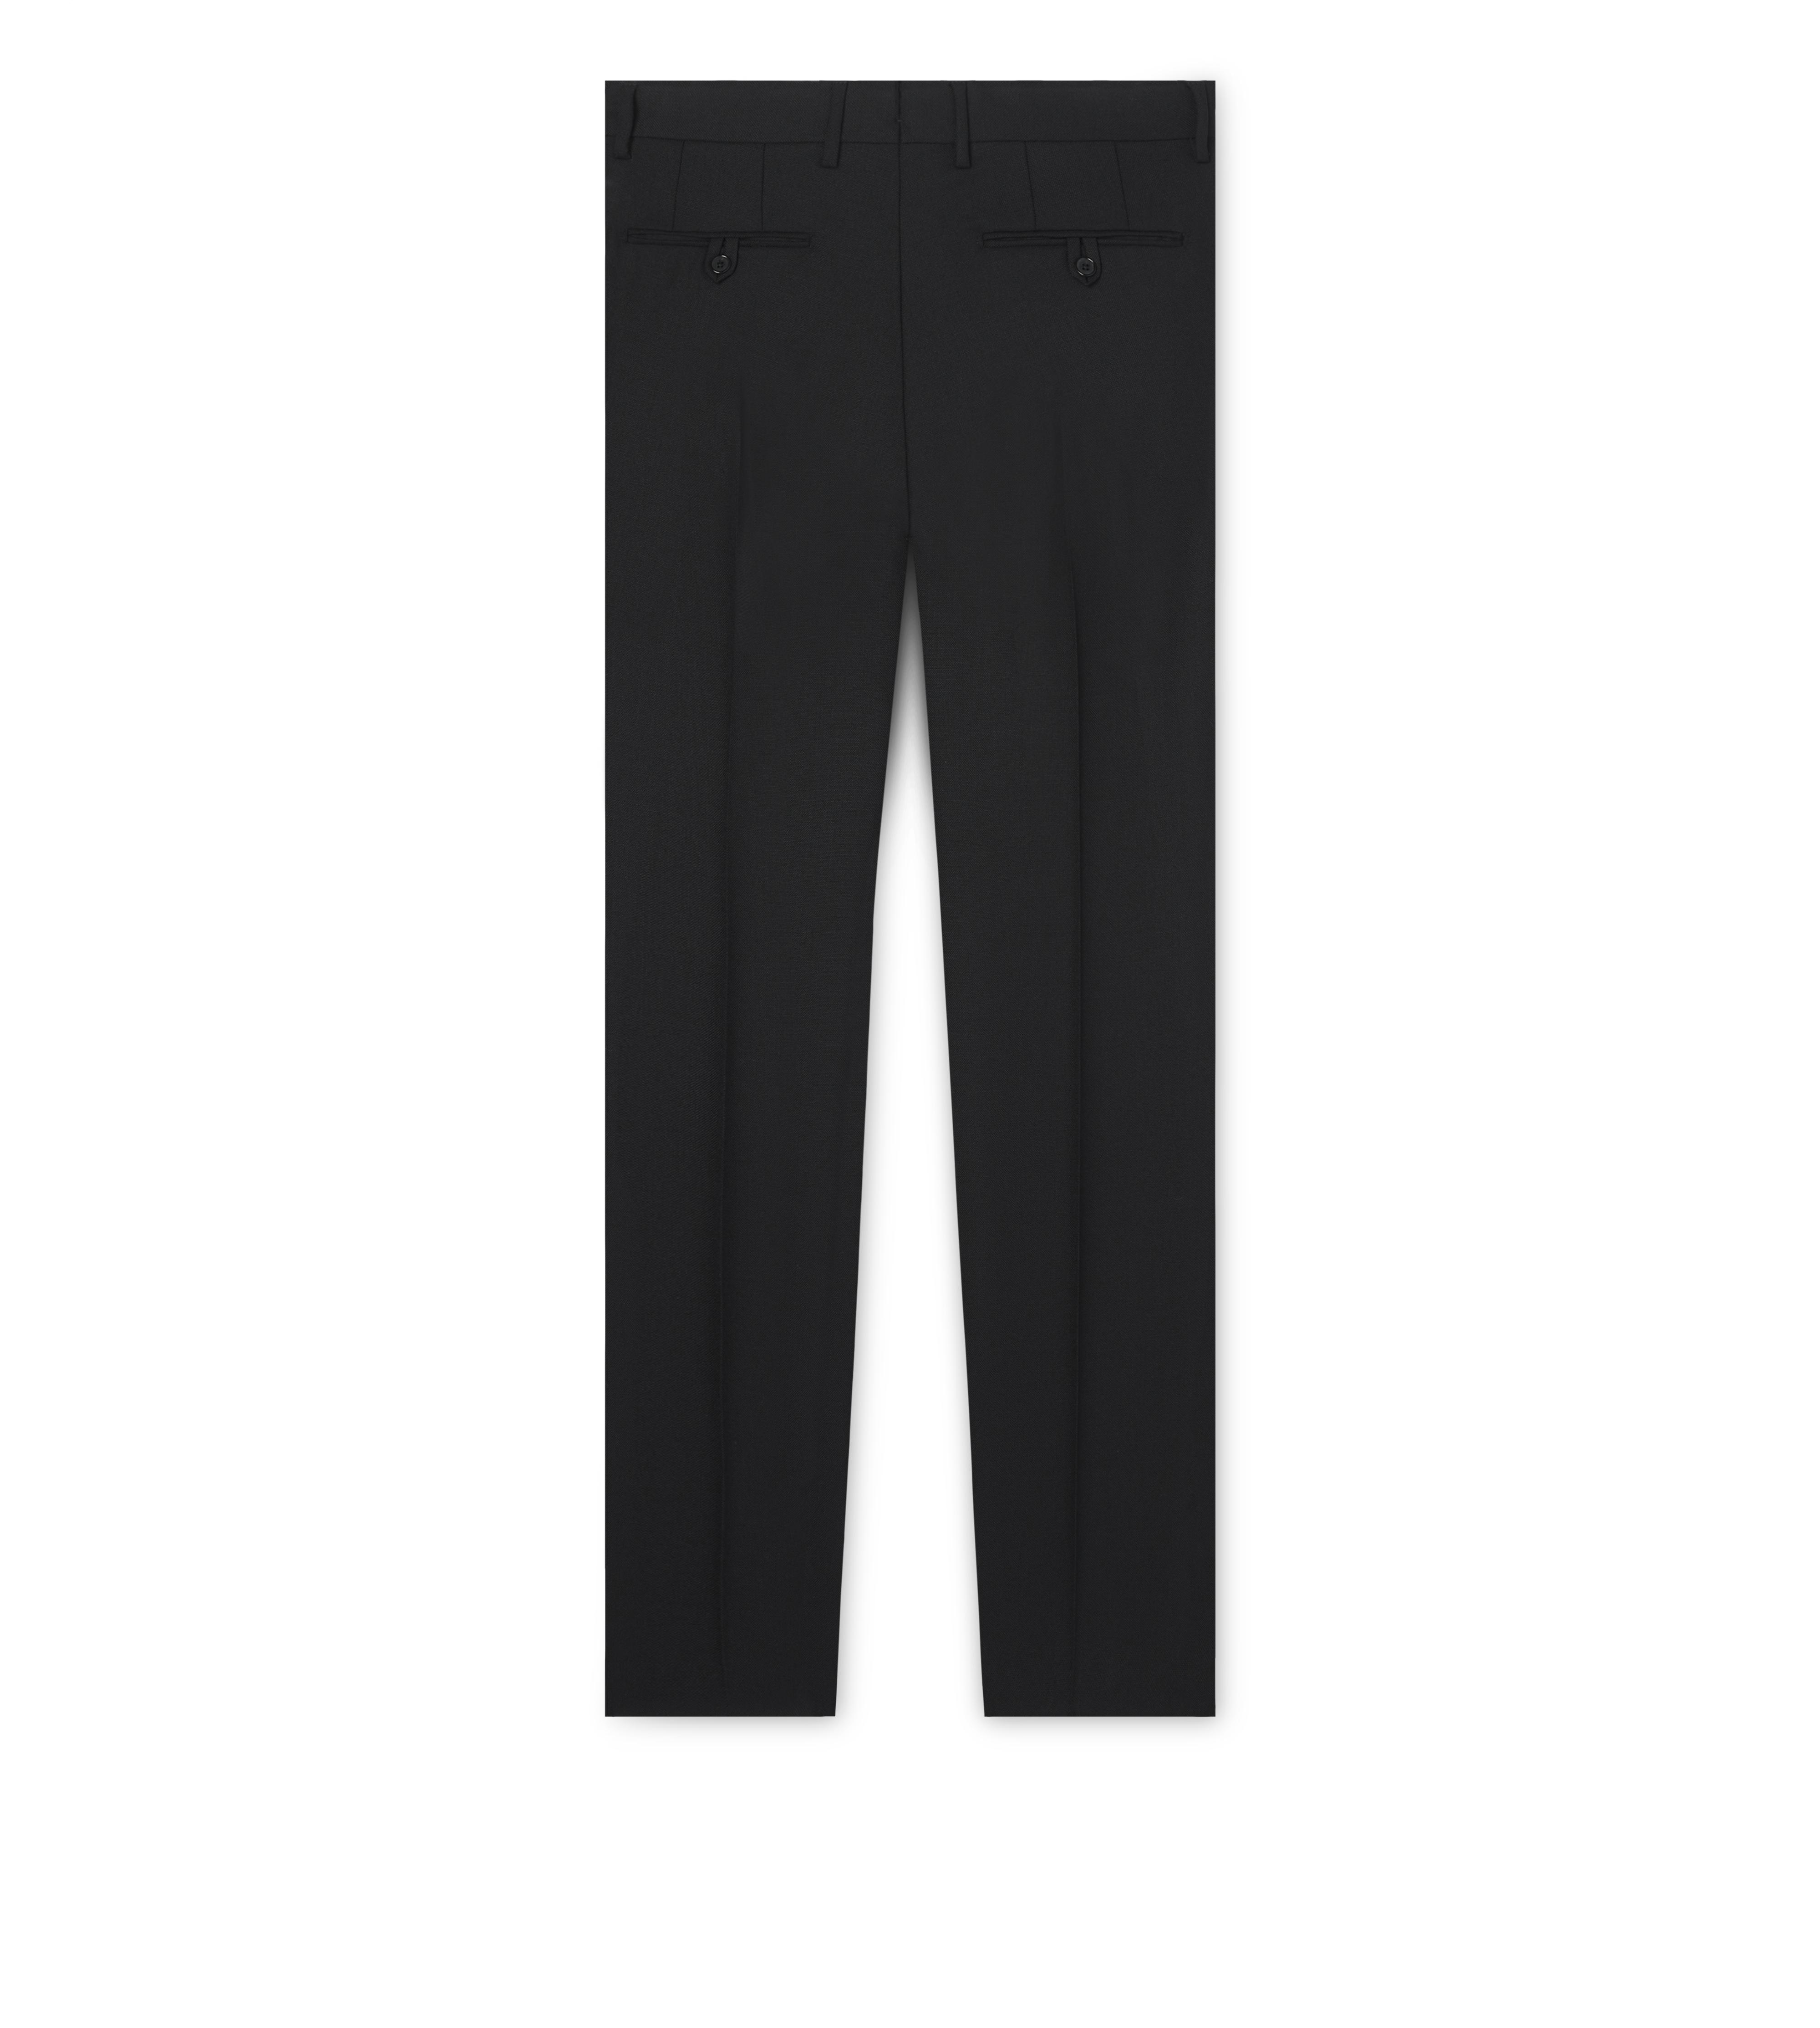 TAILORED SPORT PANTS WITH BELT LOOPS B thumbnail